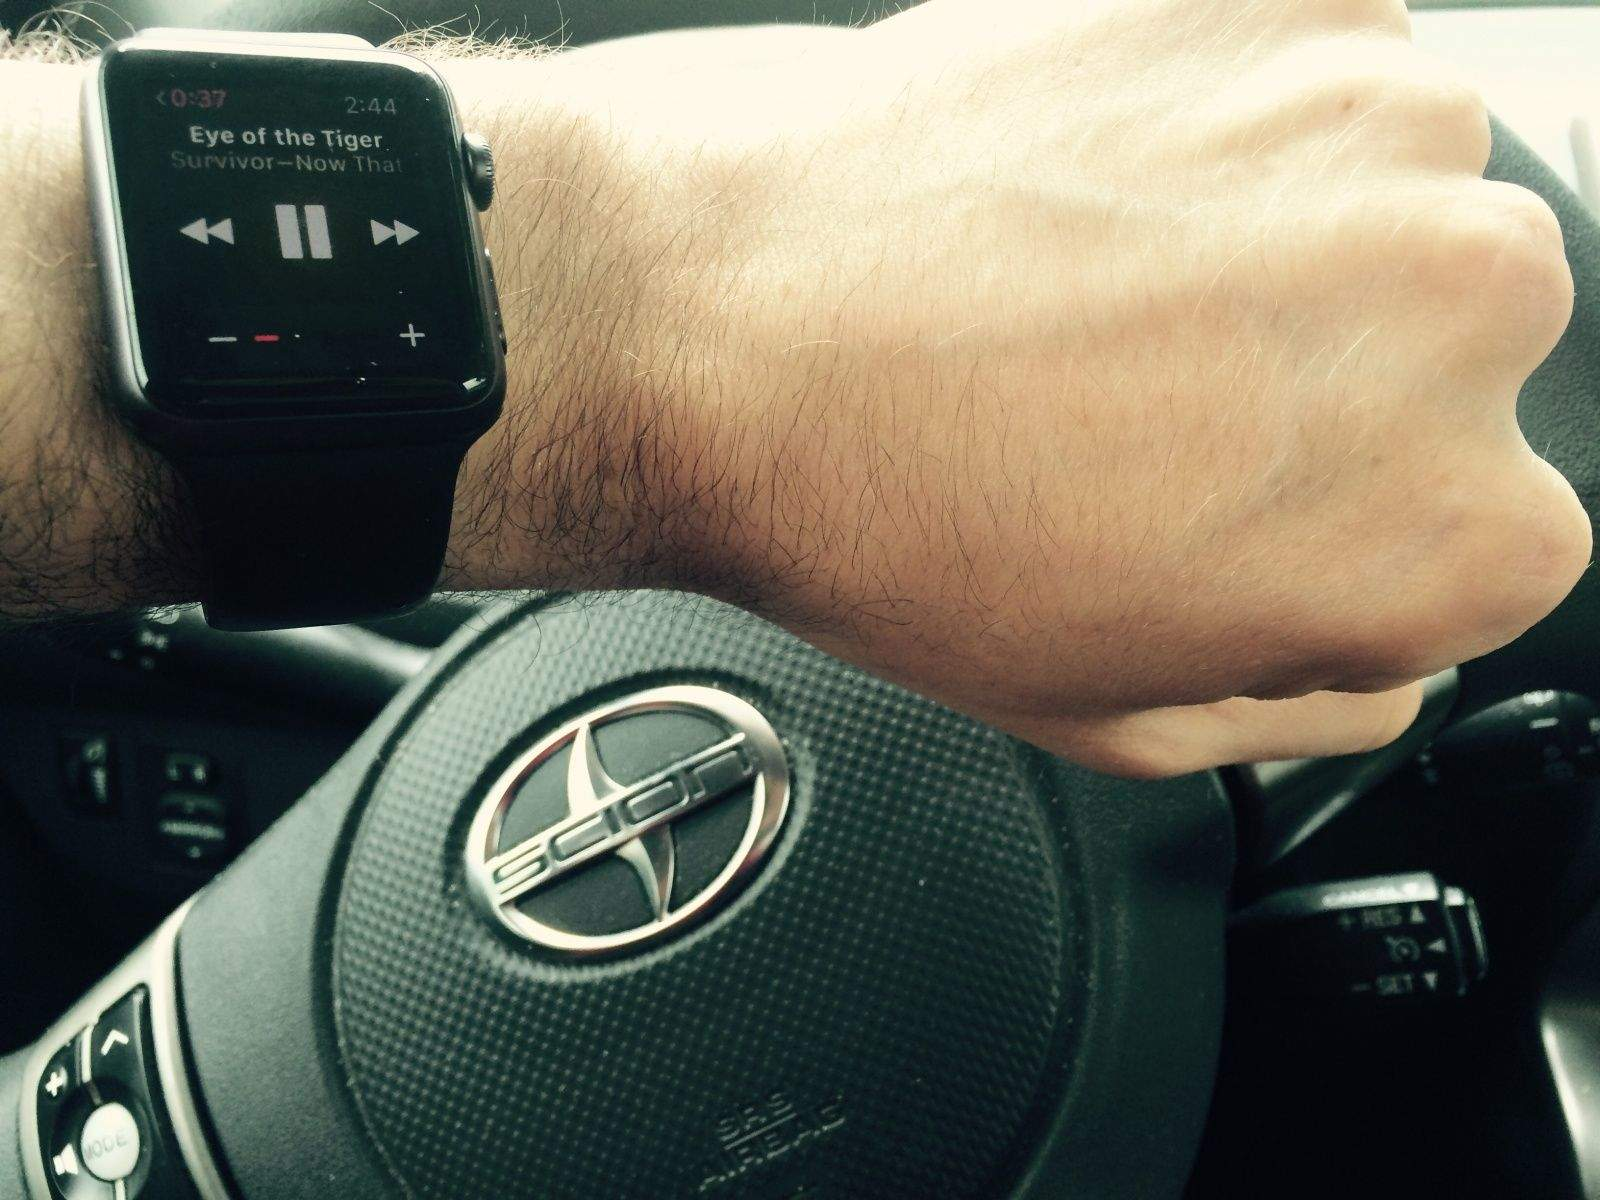 Apple Watch while driving